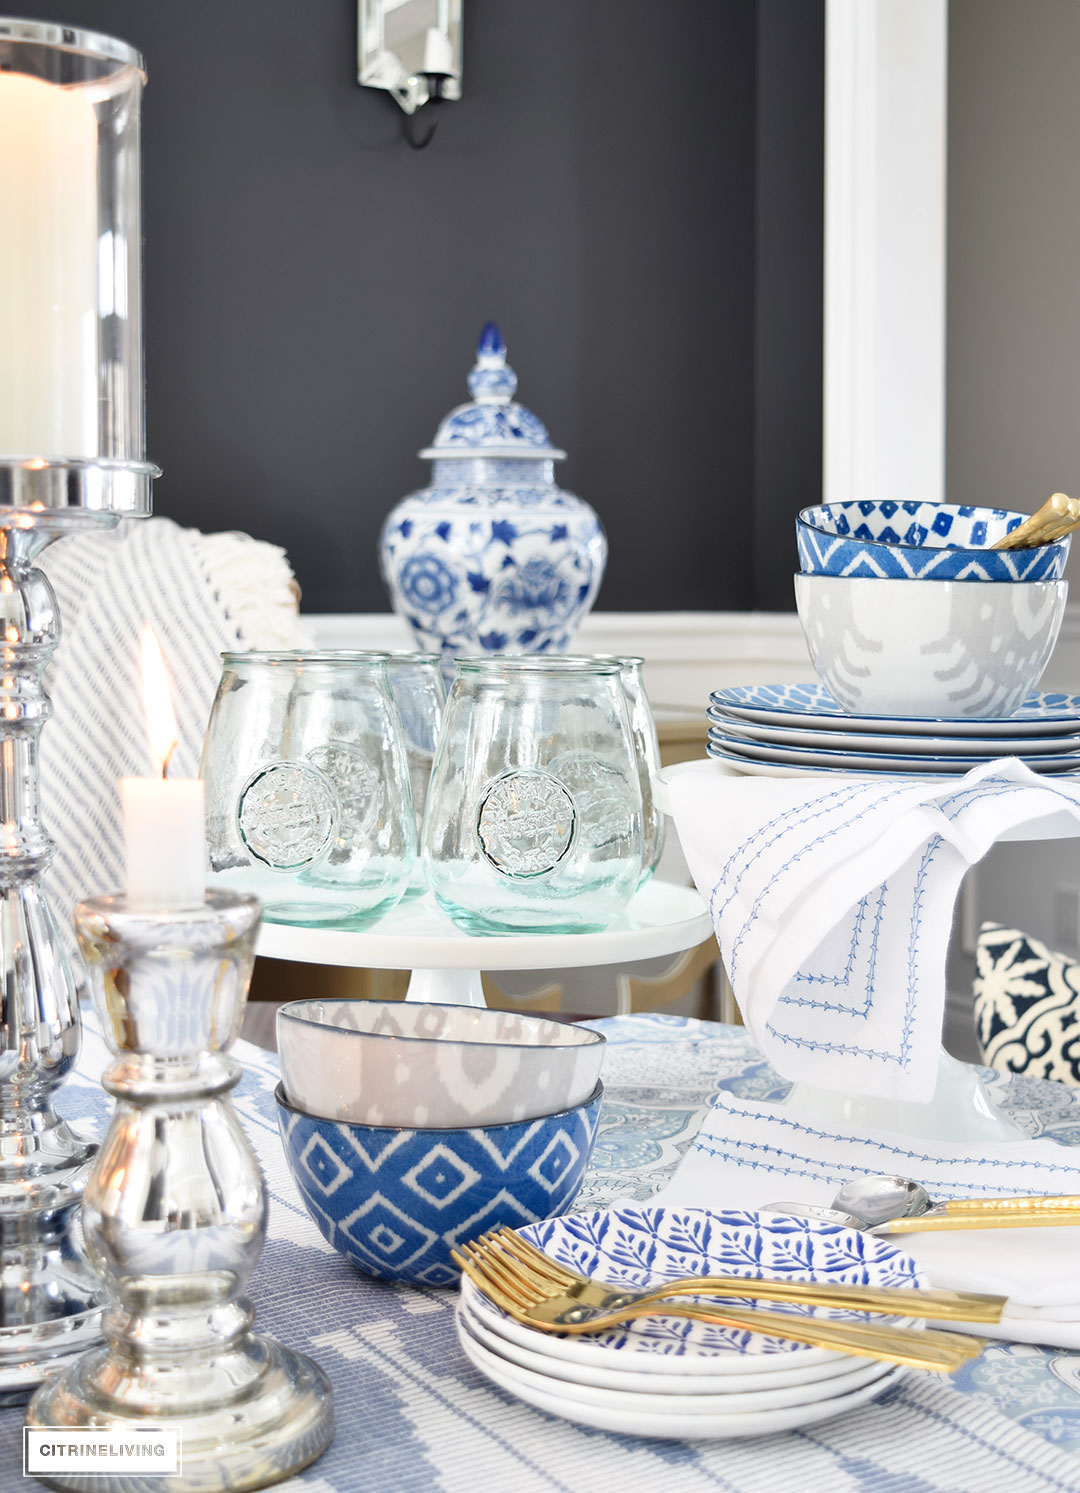 Cake stands are perfect for showcasing beautiful dishes and glassware on your table.